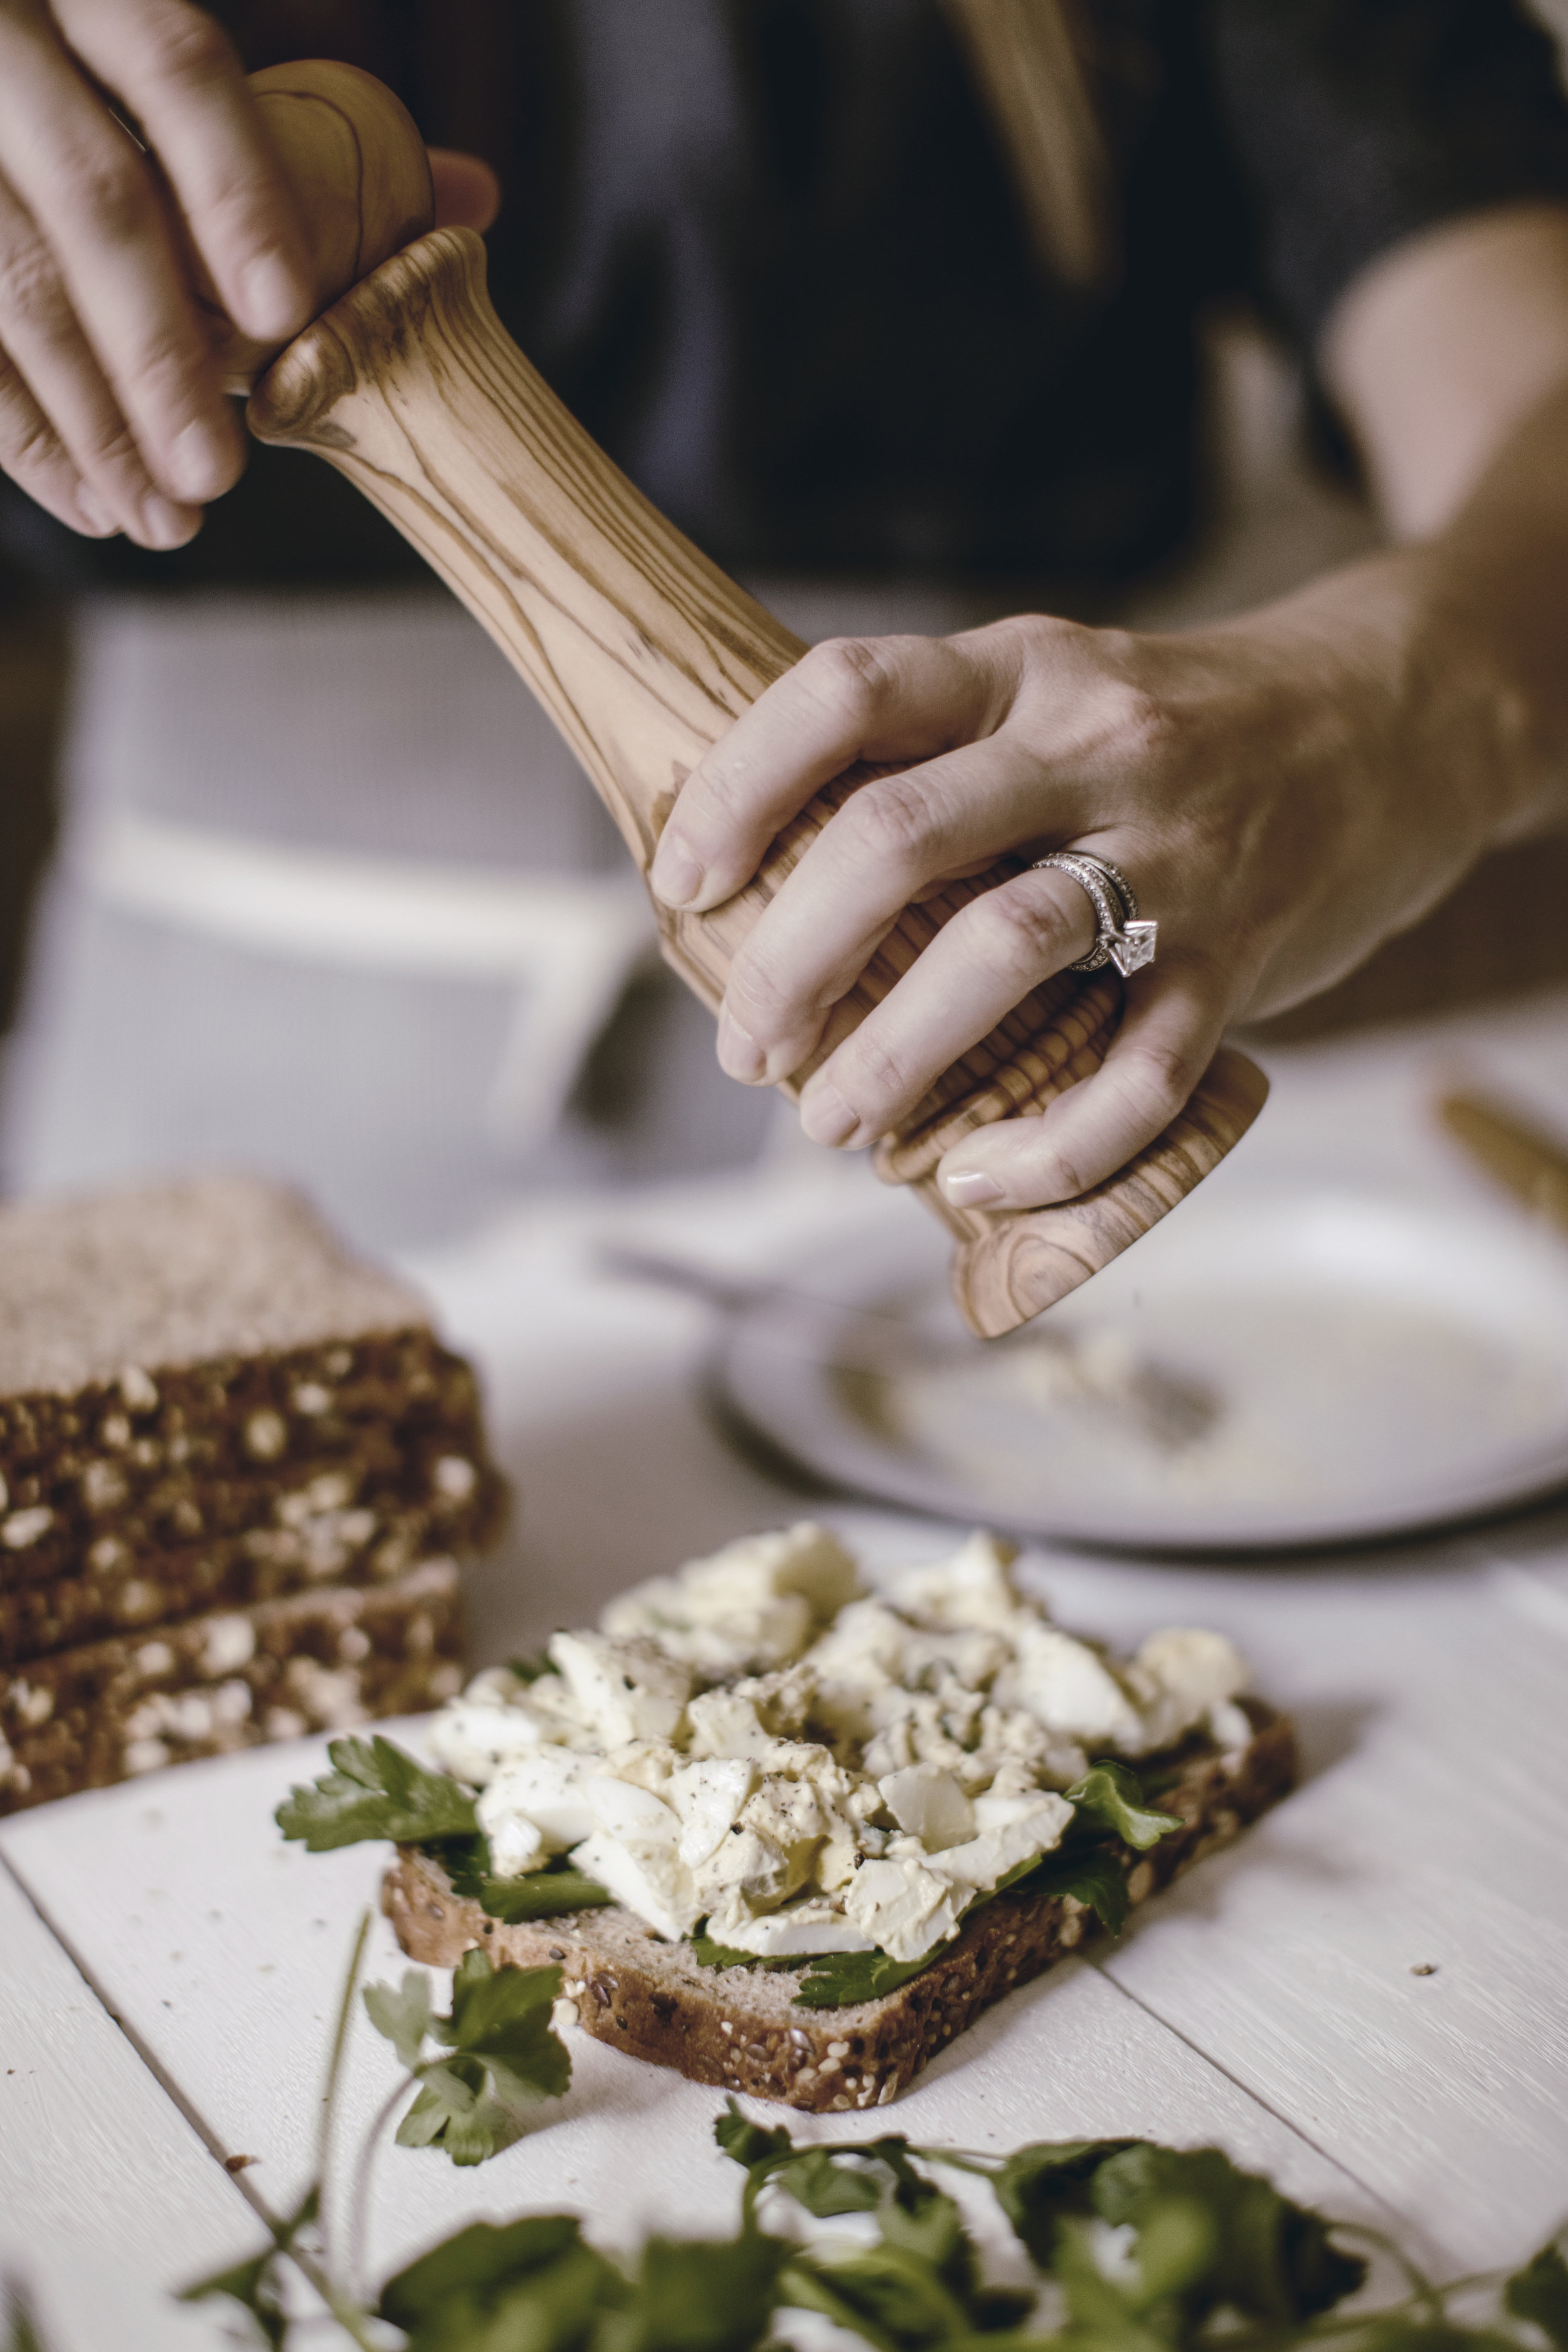 seasoning a fresh egg salad sandwich / wooden pepper mill / heirloomed